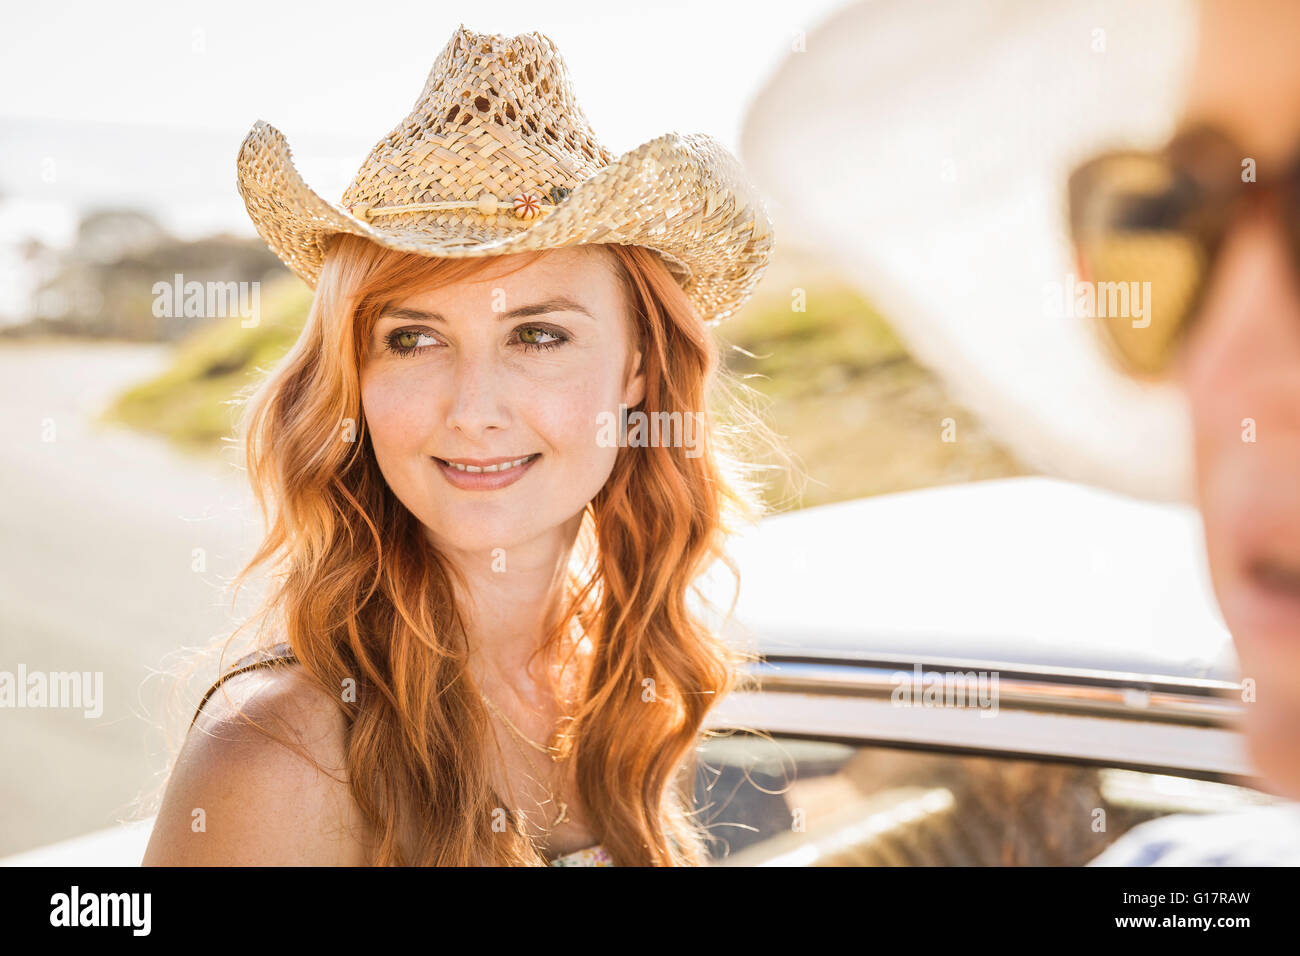 Mid adult woman wearing straw hat on coast road da433eac58a